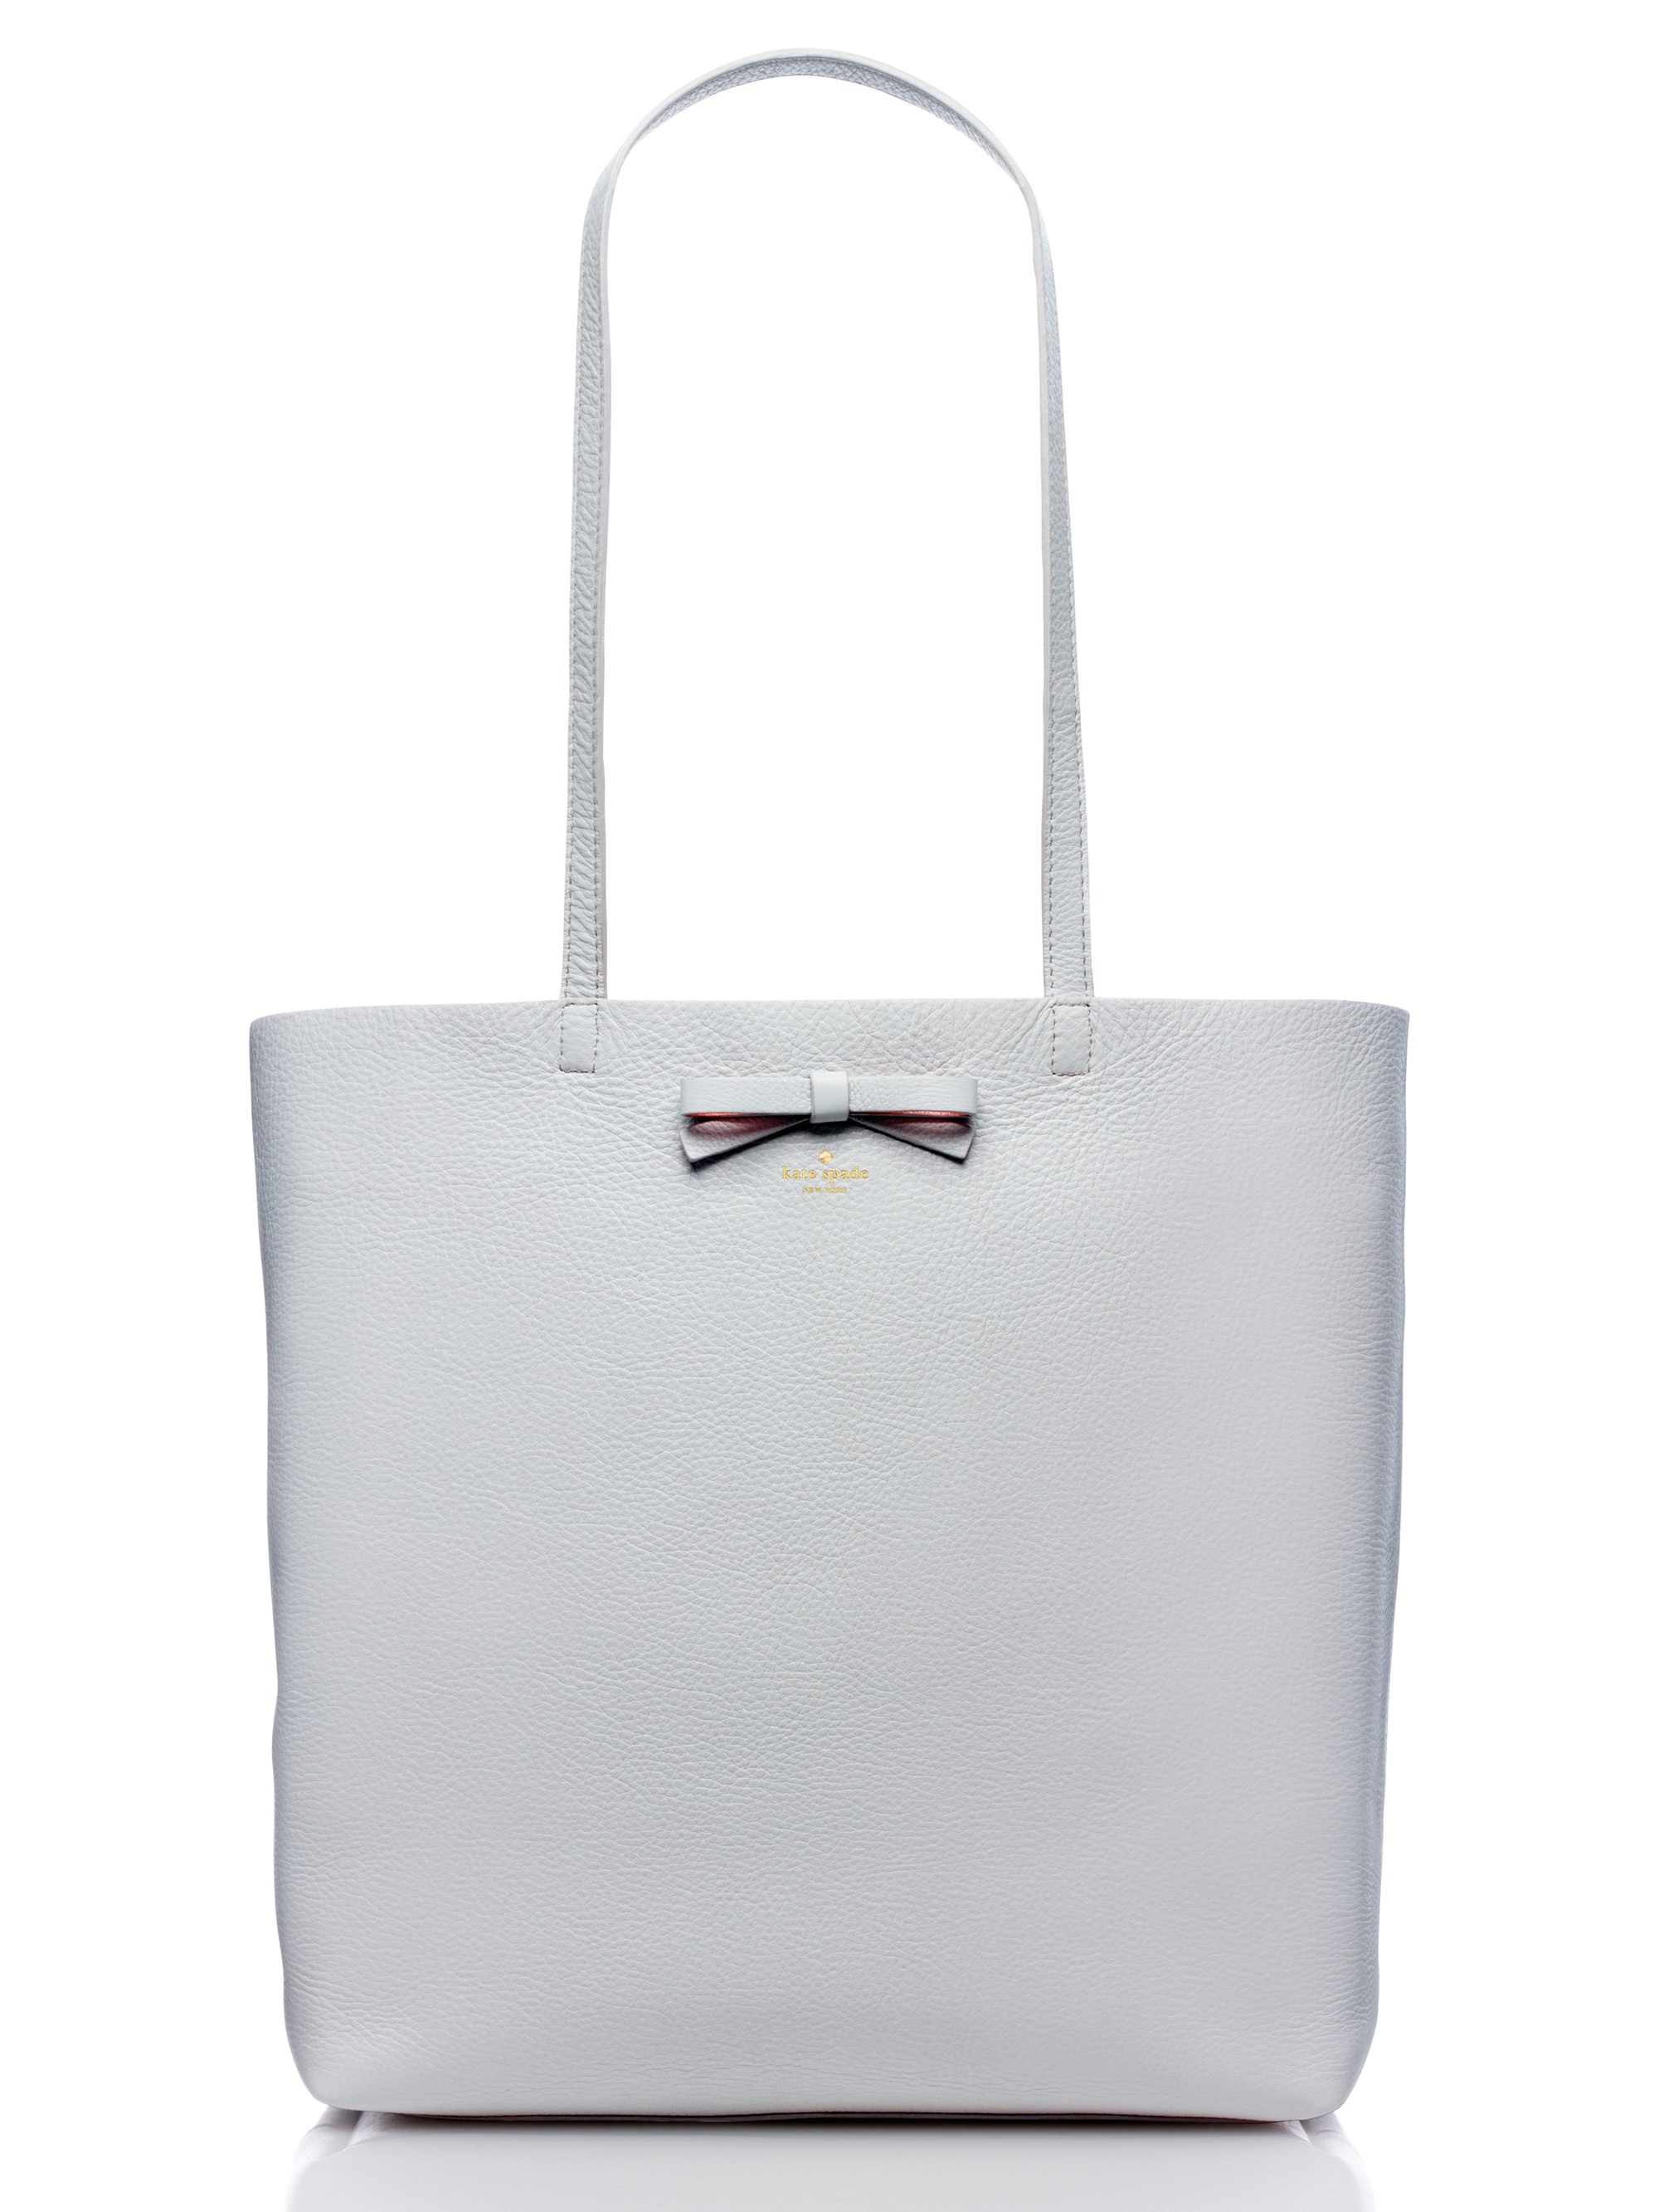 White Leather Tote Handbags   Luggage And Suitcases